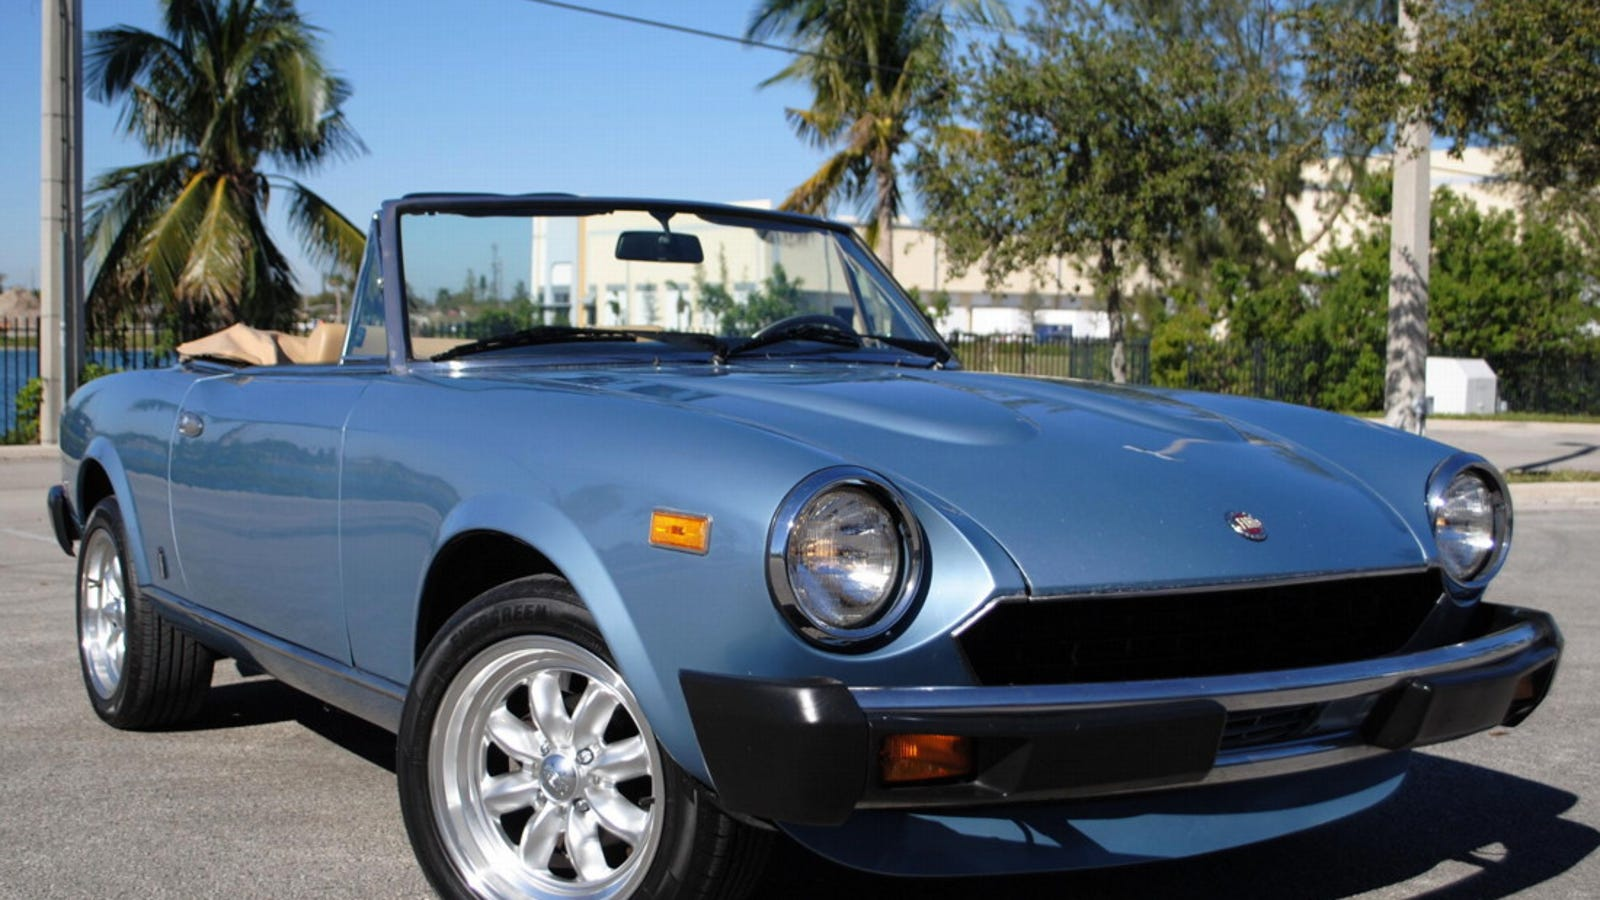 For 9 990 Could This 1981 Fiat 124 Sport Spider Make You Forget The New Miata Based One